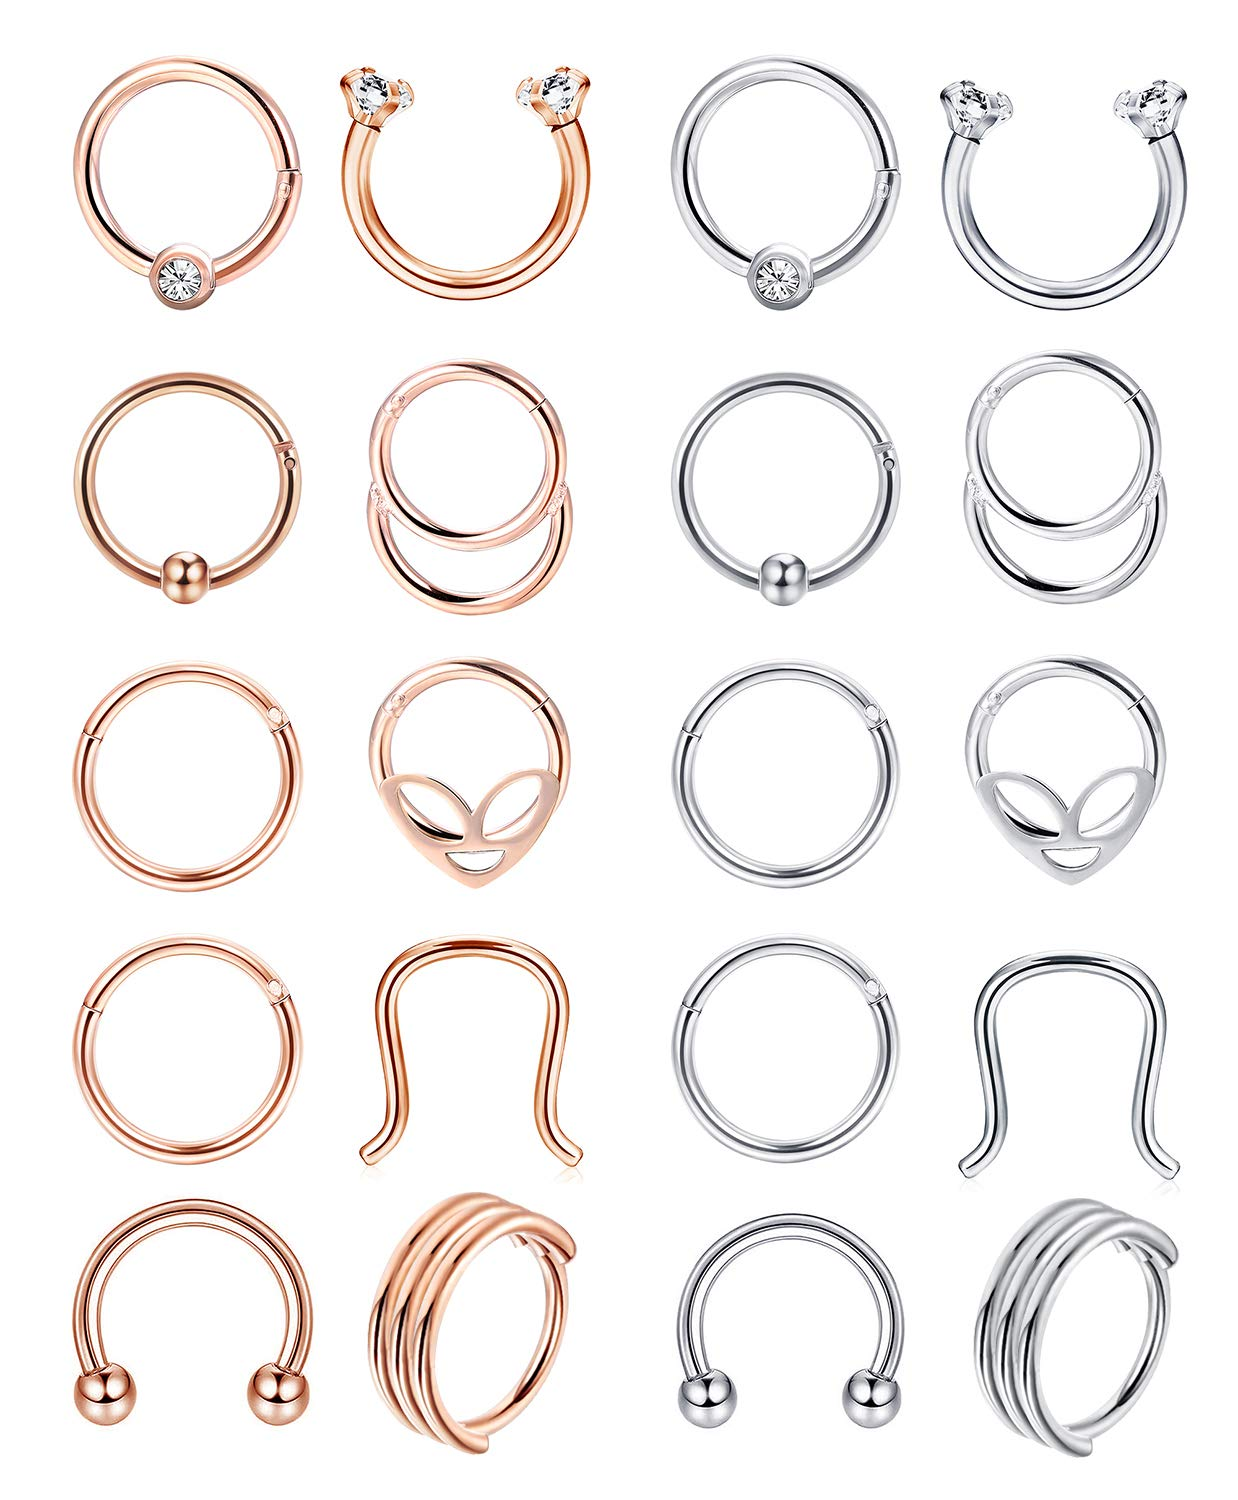 ORAZIO 20pcs Nose Septum Ring Hoop 16G Hinged Segment Ring Mixed Styles 316L Stainless Steel Septum Clicker for Body Piercing by ORAZIO